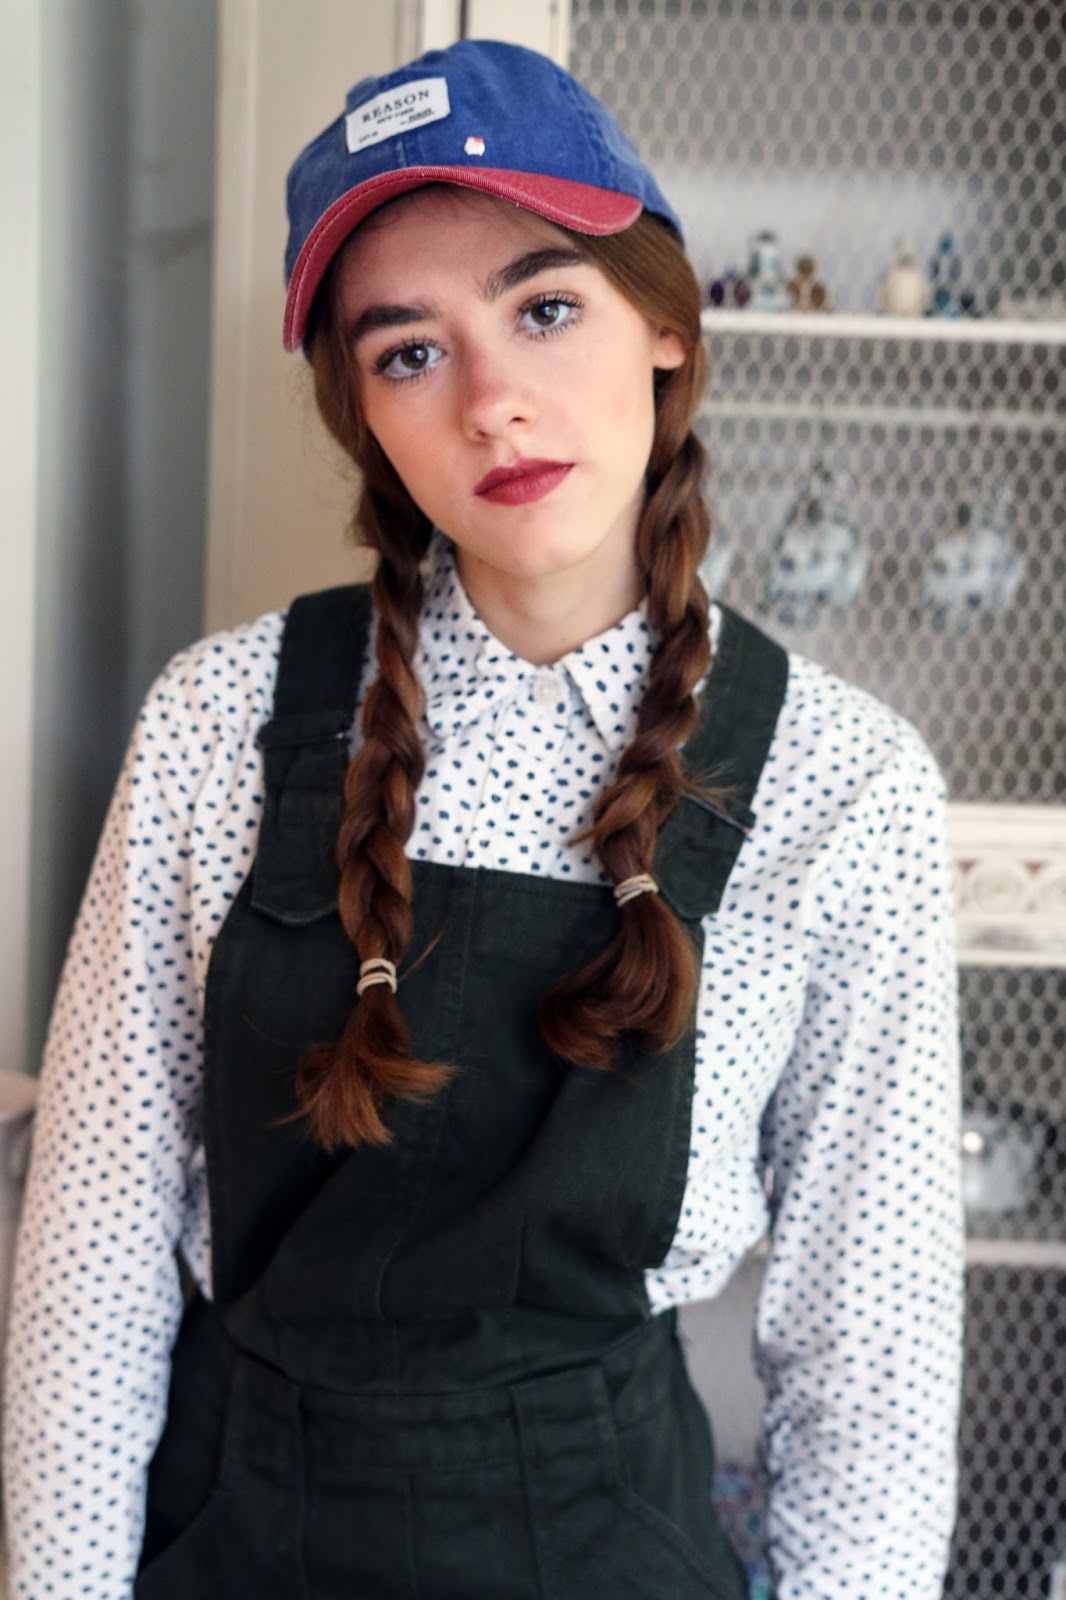 Alice in Wonderland,plaits,  Amelia, Mandeville, Jumpsuit, Mandeville Sisters, eyebrows, Blog, funny, fashion, comedy, jumpsuit, boiler suit, OOTD, Blogger, comment, witty, author, writing, Urban Outfitters, hat, cap, dungarees, dress, shirt, blouse.